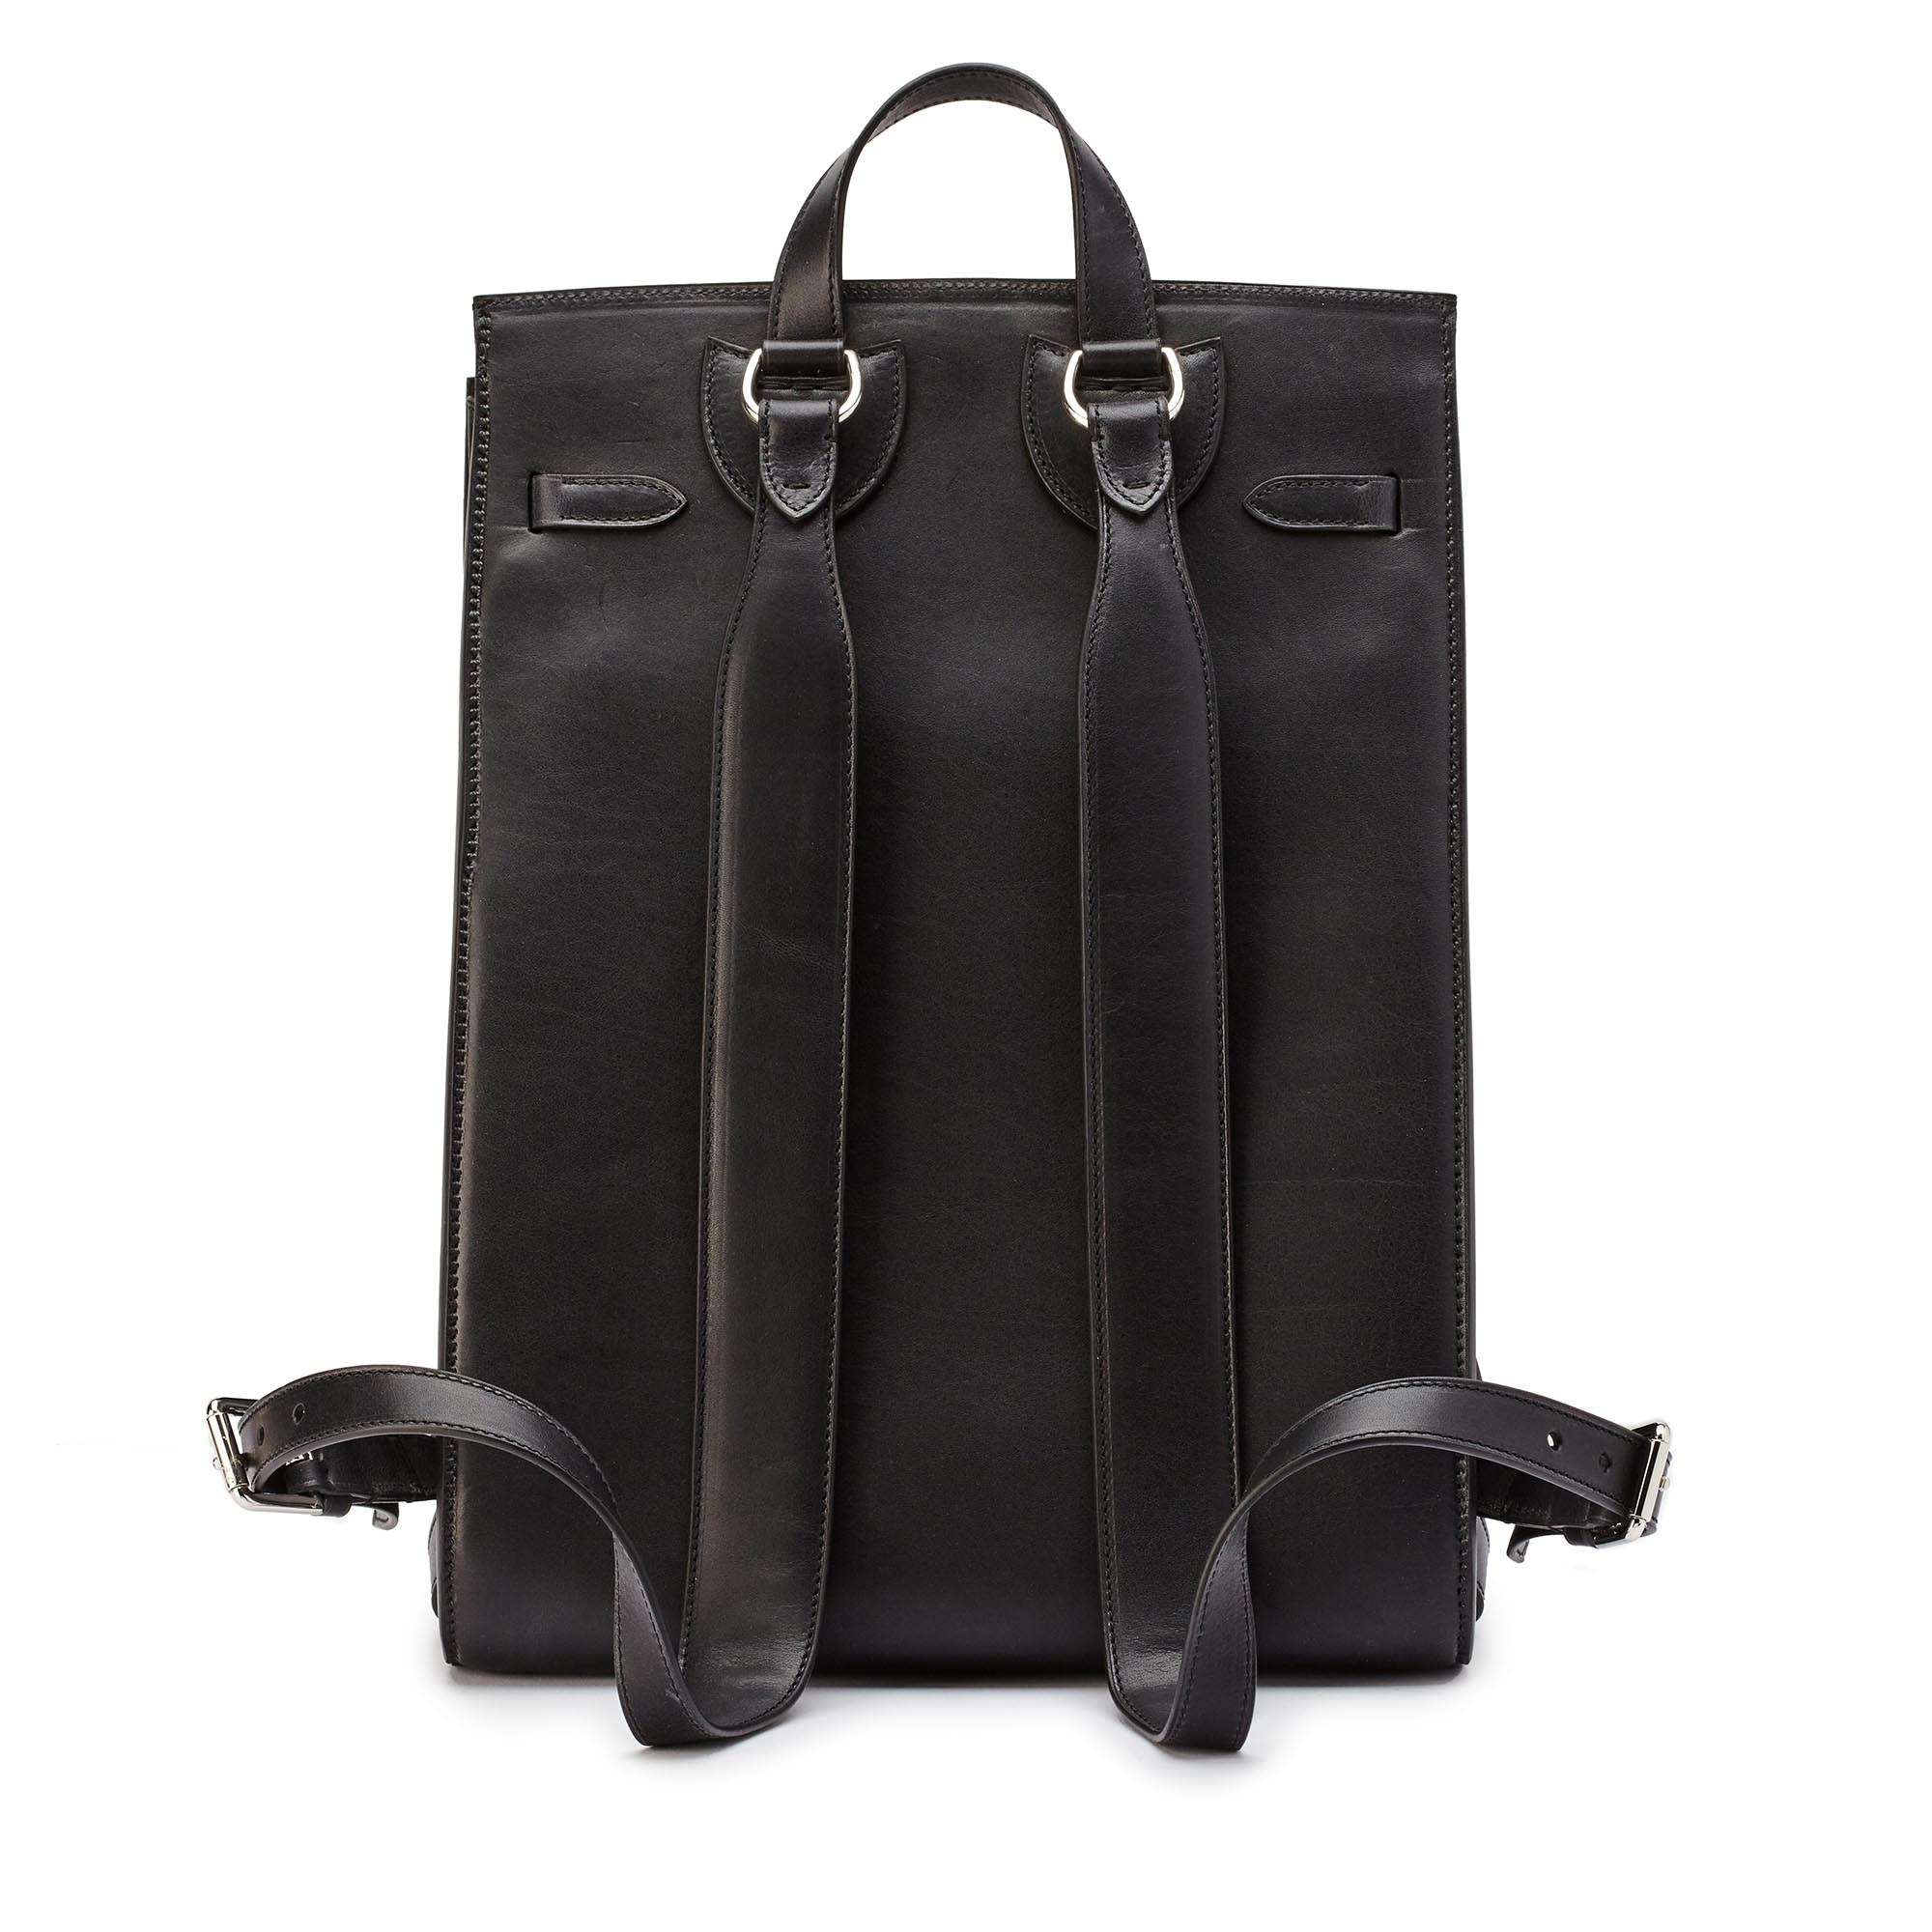 Signature-Backpack-black-ivory-rock-calf-bag-Bertoni-1949_02